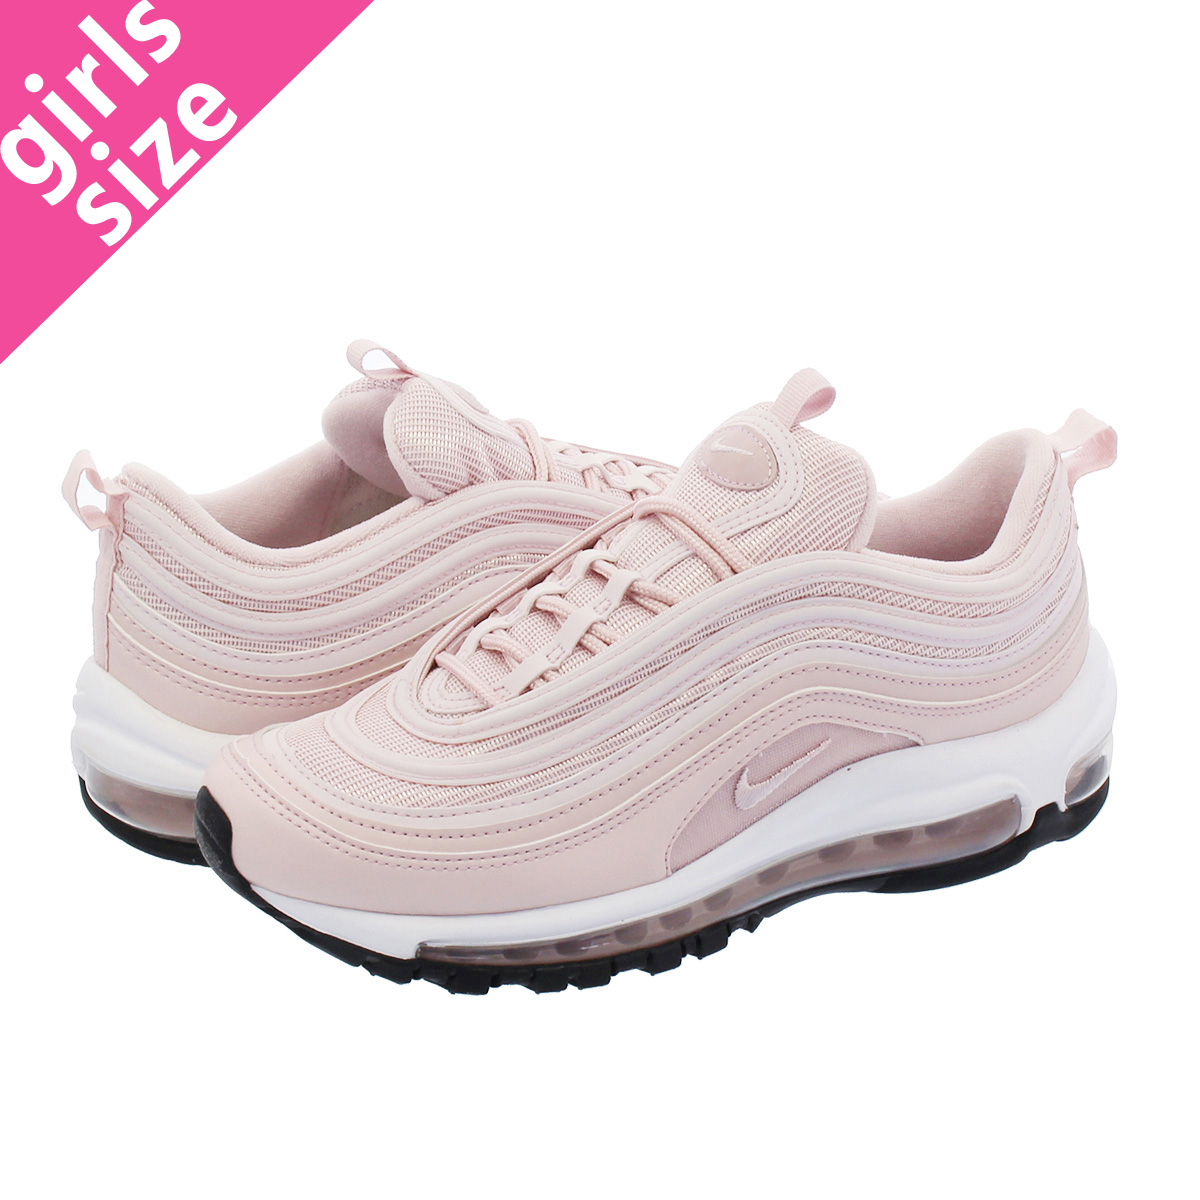 online store 9a1bb d840e NIKE WMNS AIR MAX 97 Nike women Air Max 97 BARELY ROSE/WHITE/BLACK  921733-600-l